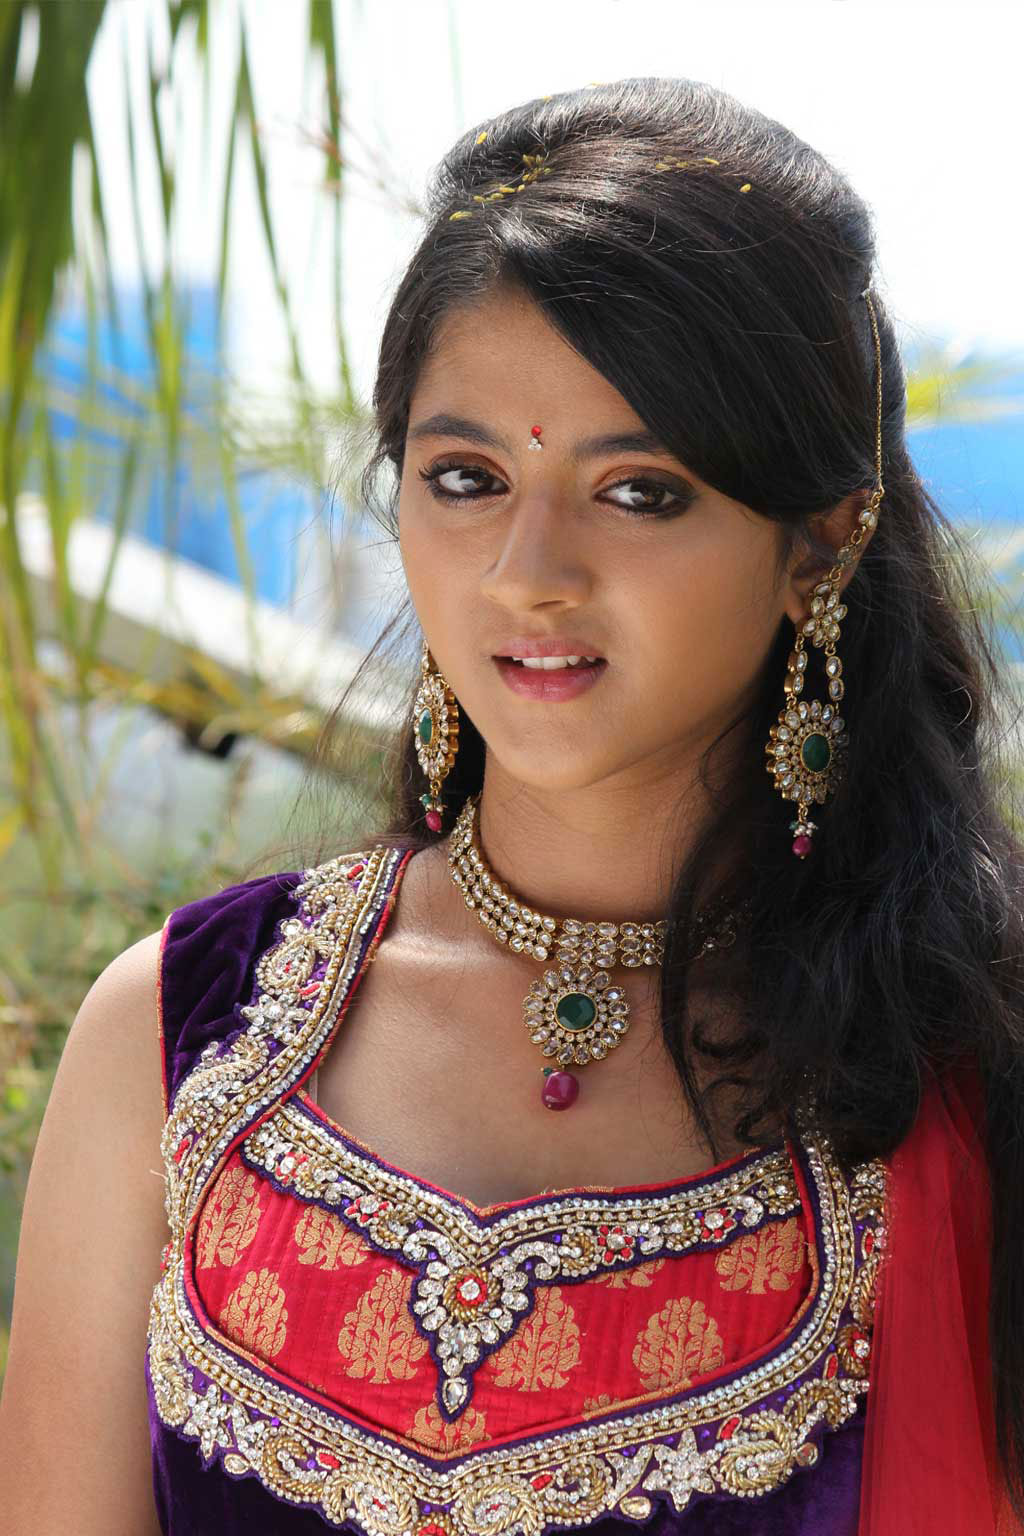 shriya sharma biography